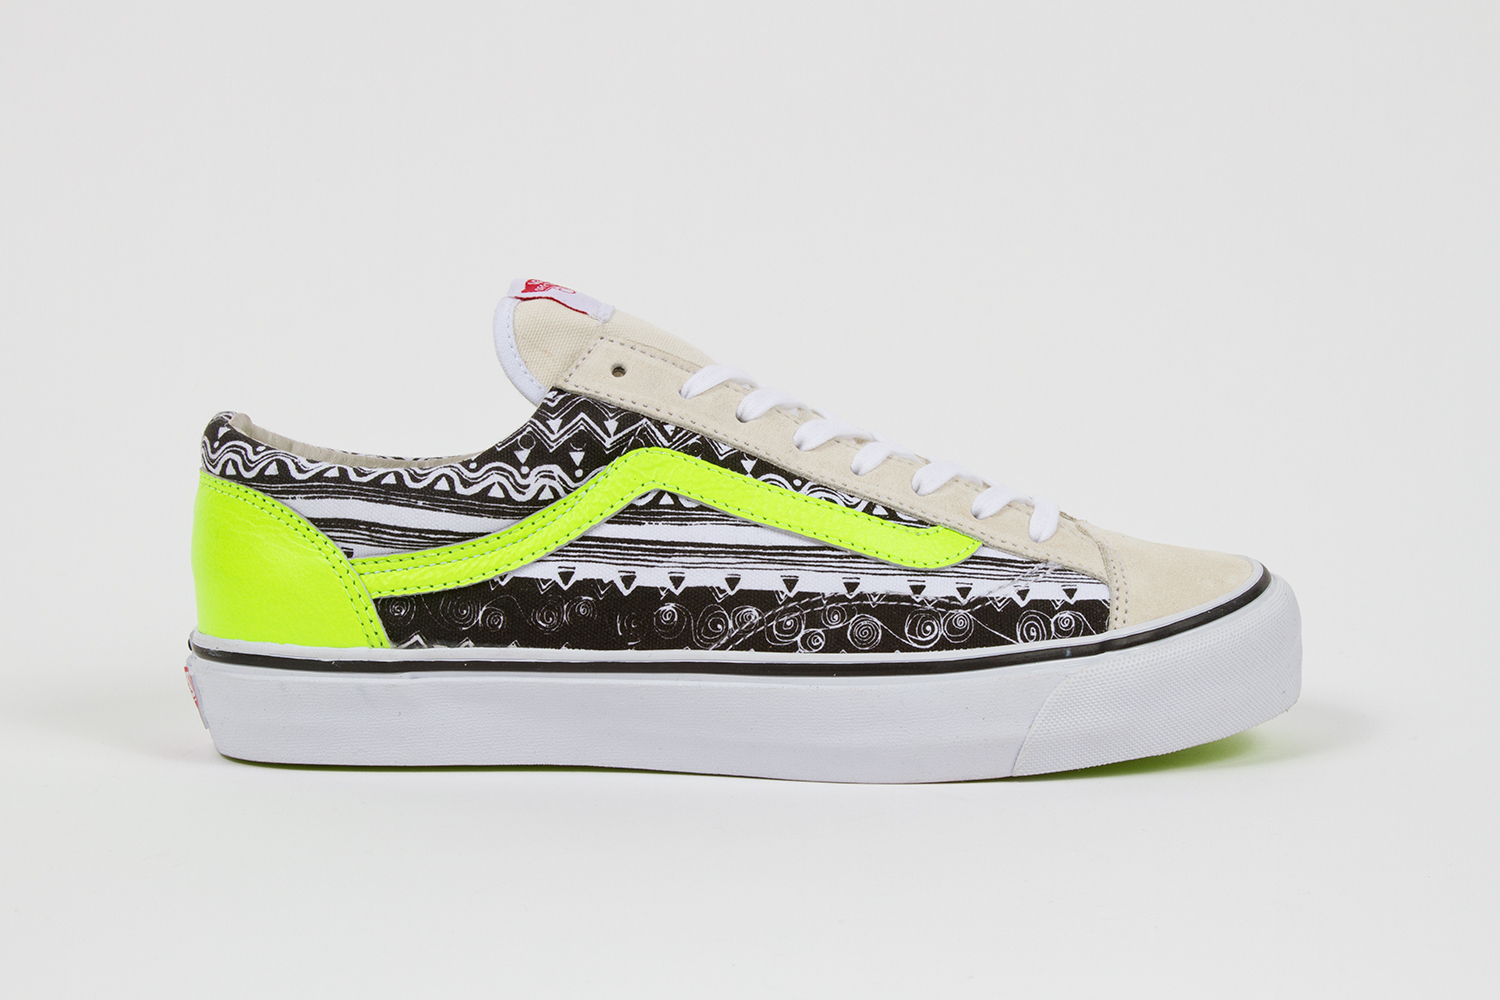 Stussy x Vans Vault Collection for Spring 2014 | Sole Collector